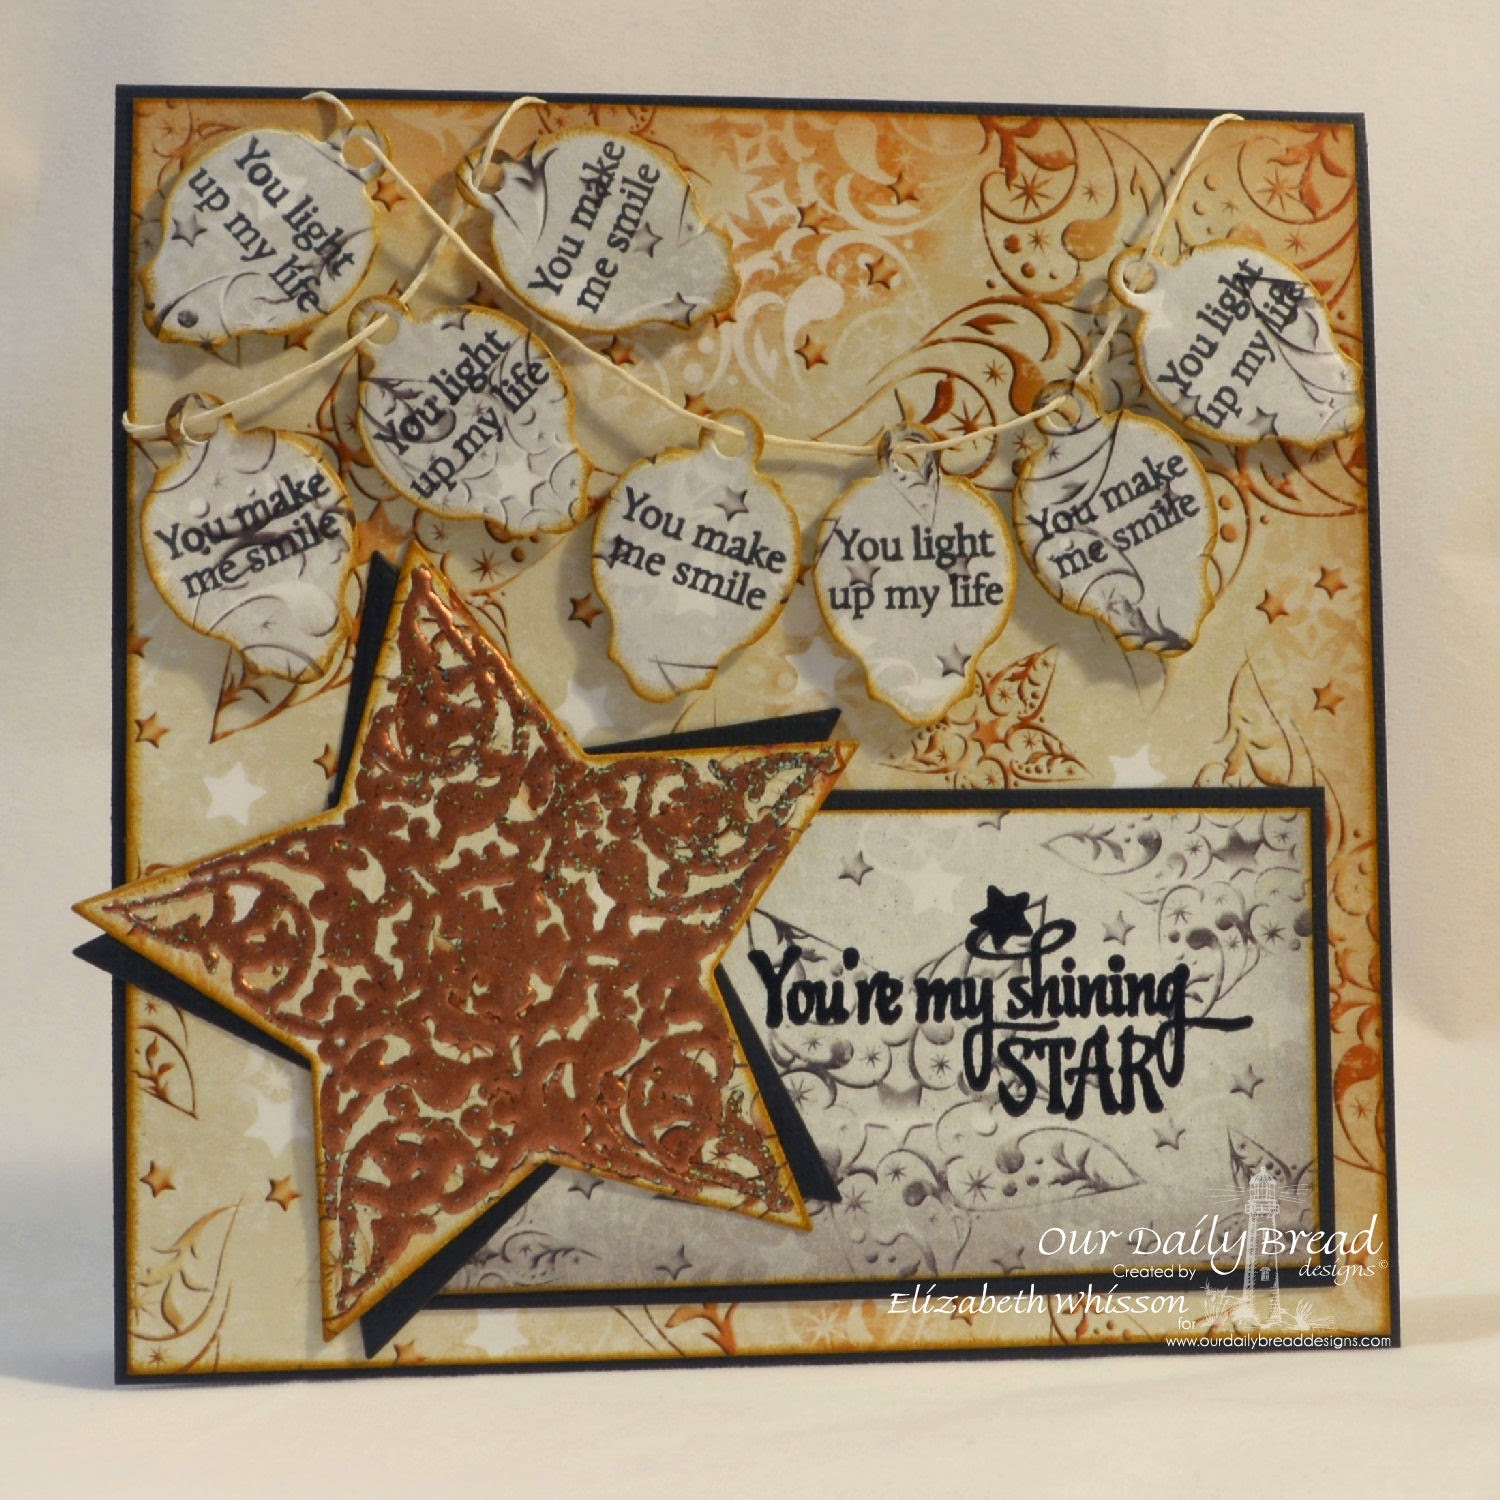 Elizabeth Whisson, Our Daily Bread Designs, You're my shining star, Shine On, embossing, Mini Tags Dies, Mini Tag Sentiments, Winter Collection, Sparkling Stars Dies, aged copper, frantage, handmade card